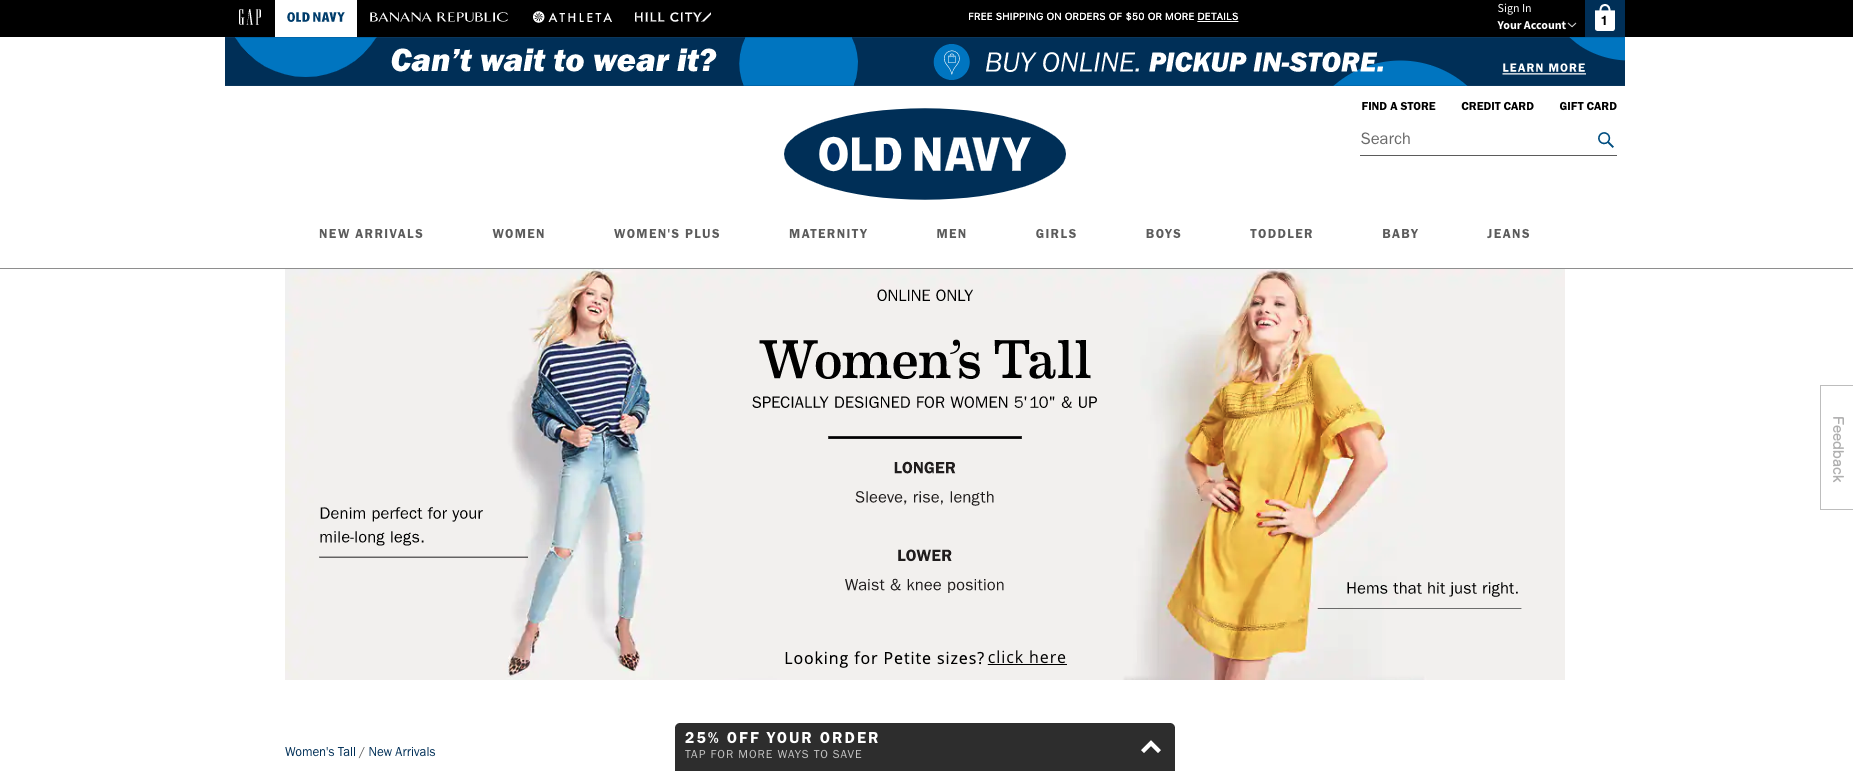 old navy clothing for tall women